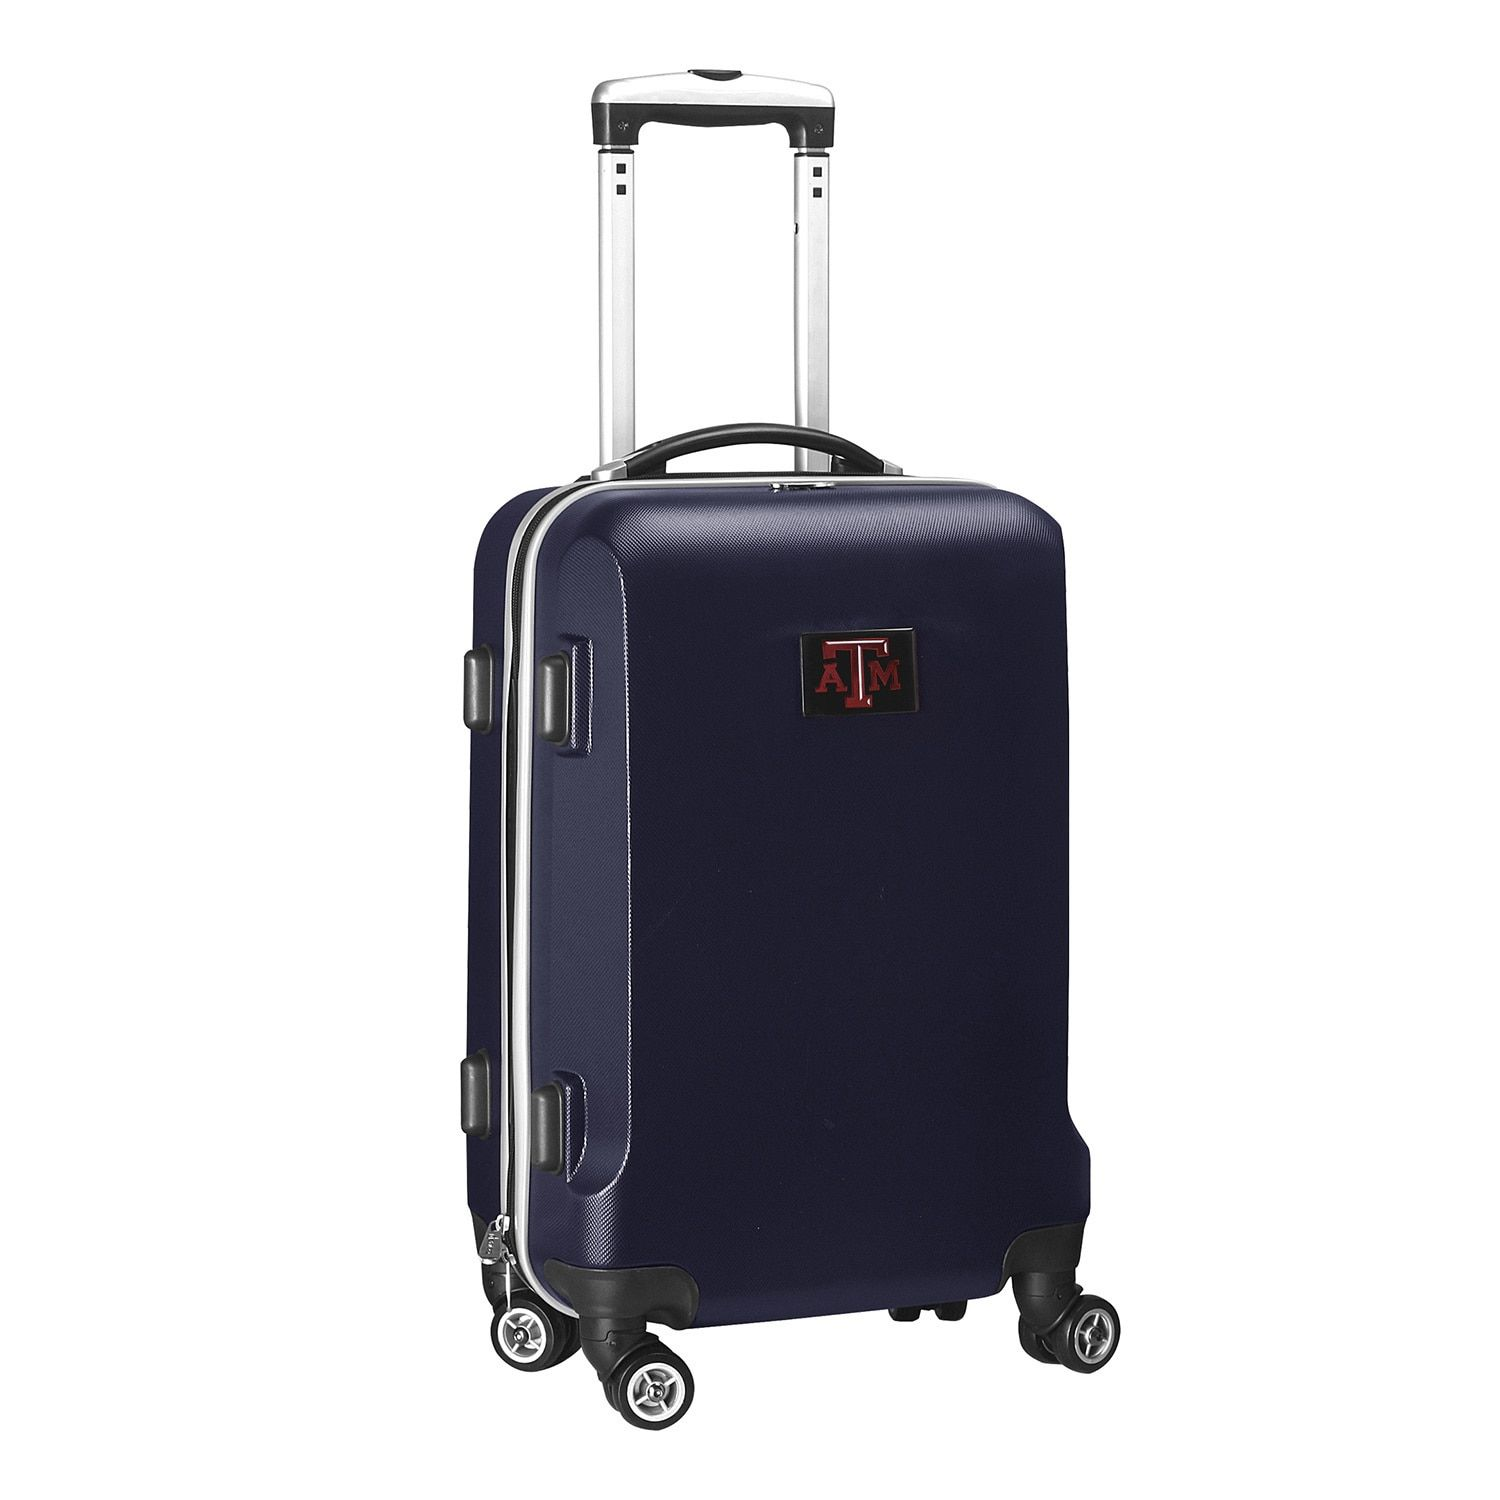 Denco Sports Ncaa Texas A&M Aggies 20-inch Hardside Carry-on Spinner Suitcase